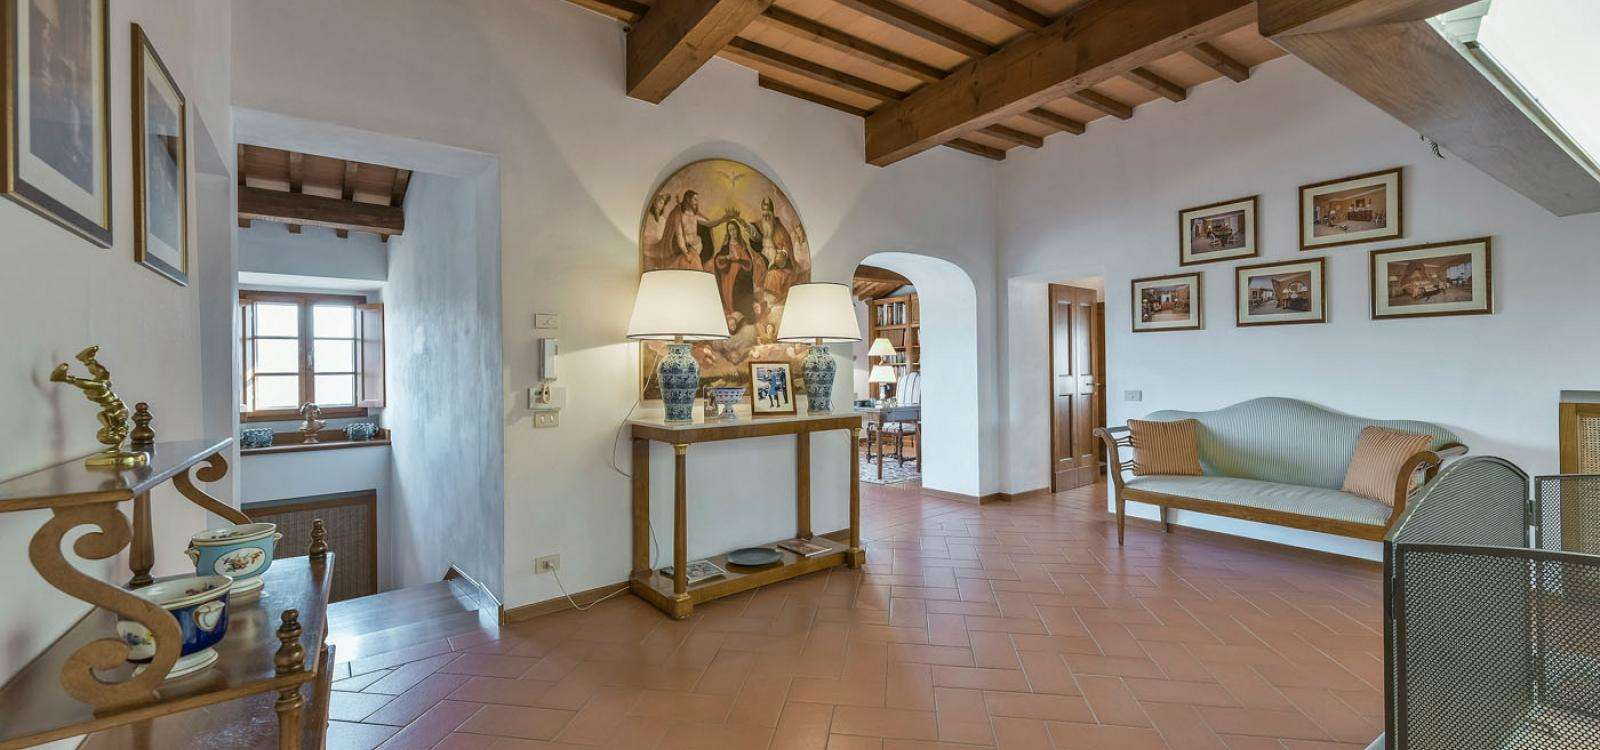 Luxury vacation rentals europe - Italy - Tuscany - Florence - Adorna - Image 1/32